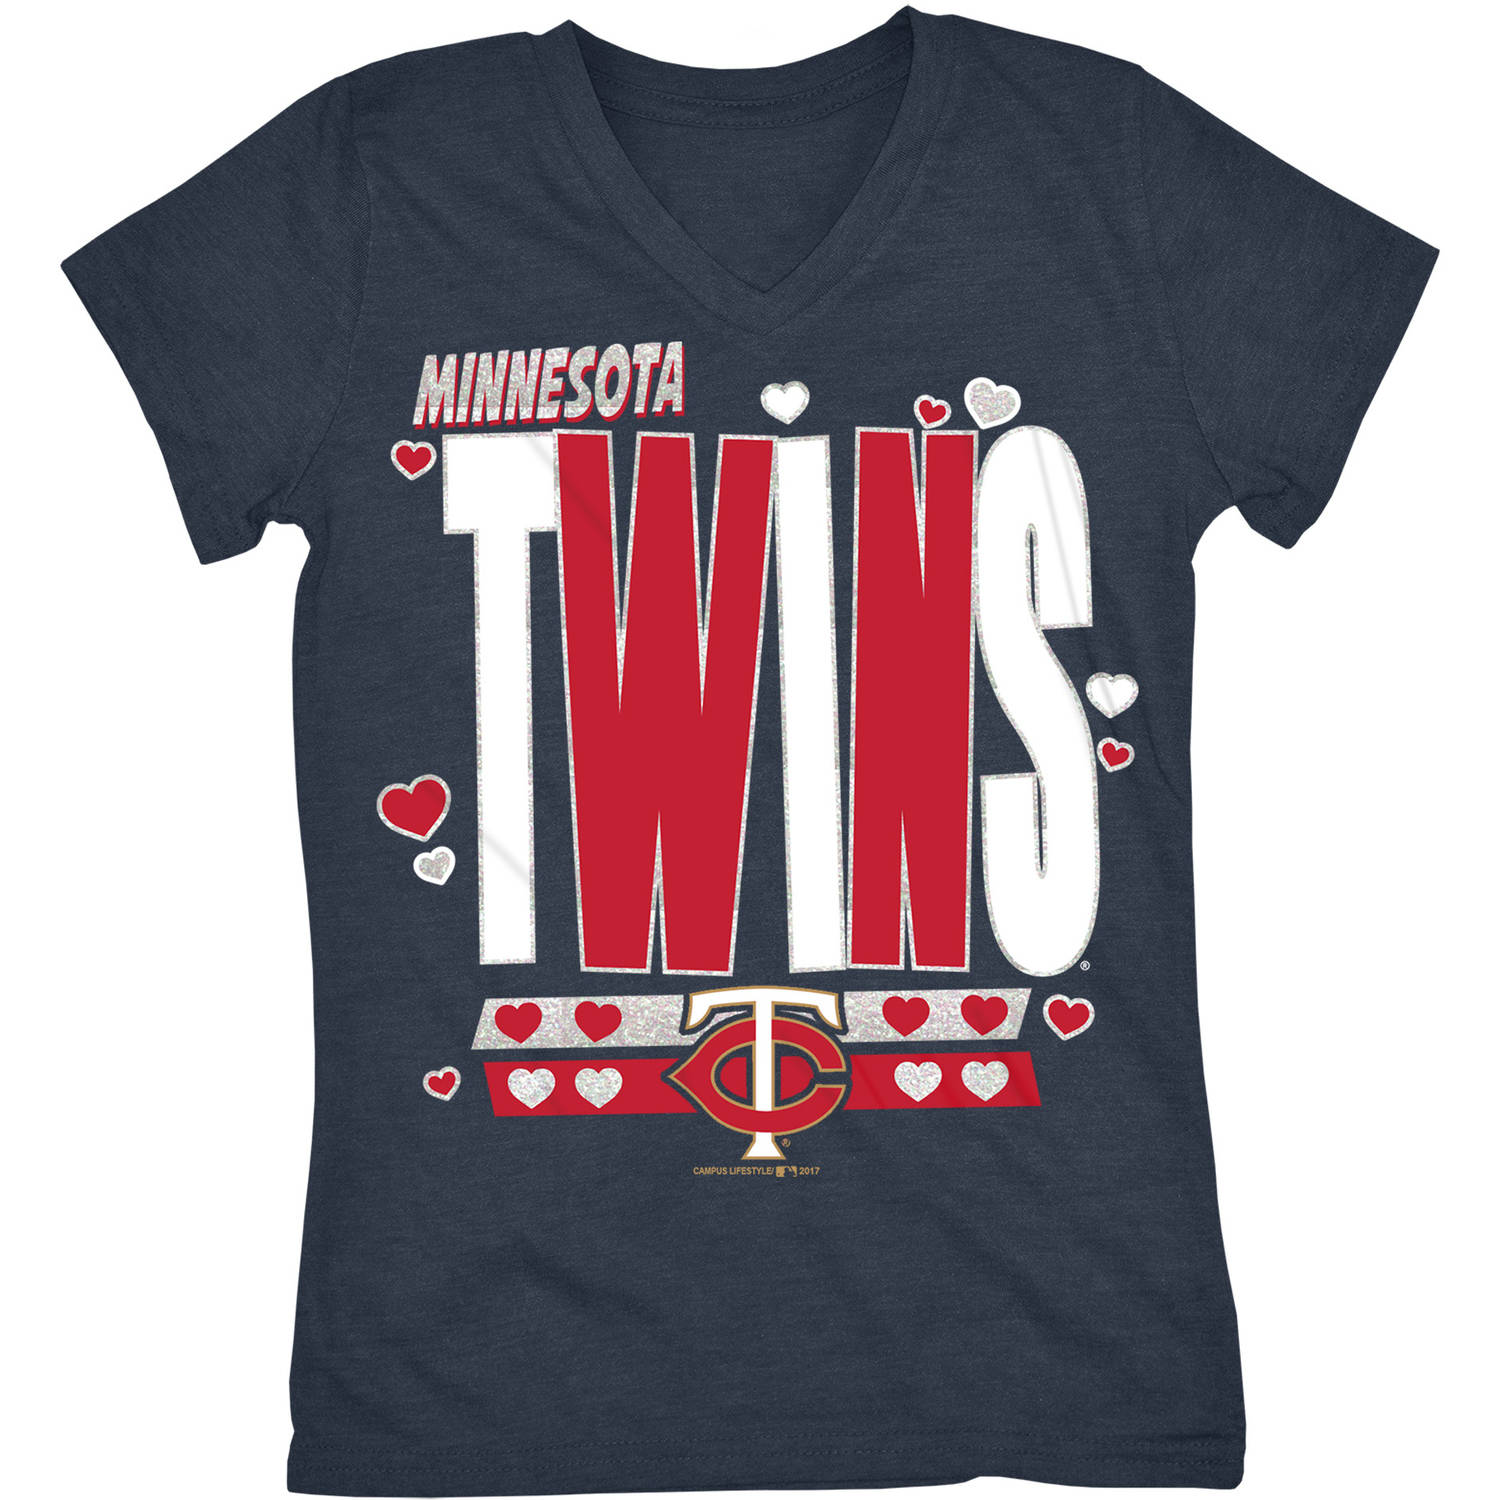 MLB Minnesota Twins Girls Short Sleeve Team Color Graphic Tee